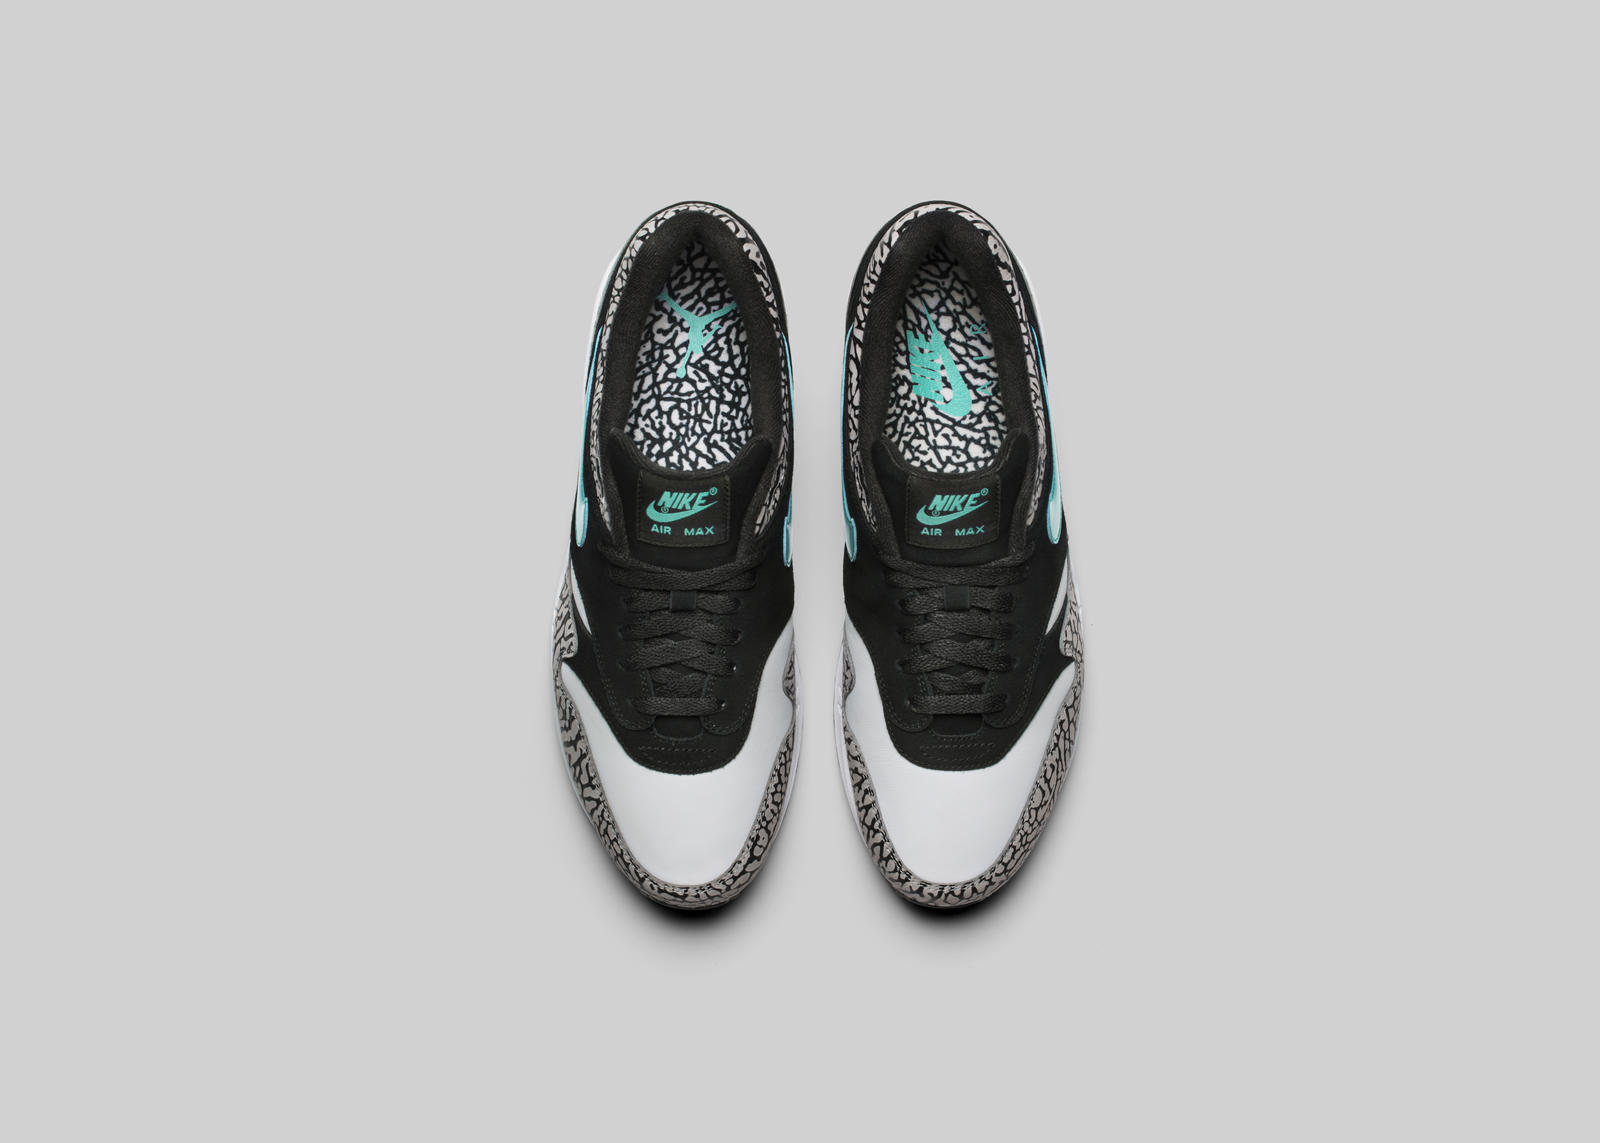 a238ce50a252 Easily one of the most memorable was the premium pair atmos turned out in  2007. Already famous worldwide for two initial Nike Air Max 1 designs (the  first ...